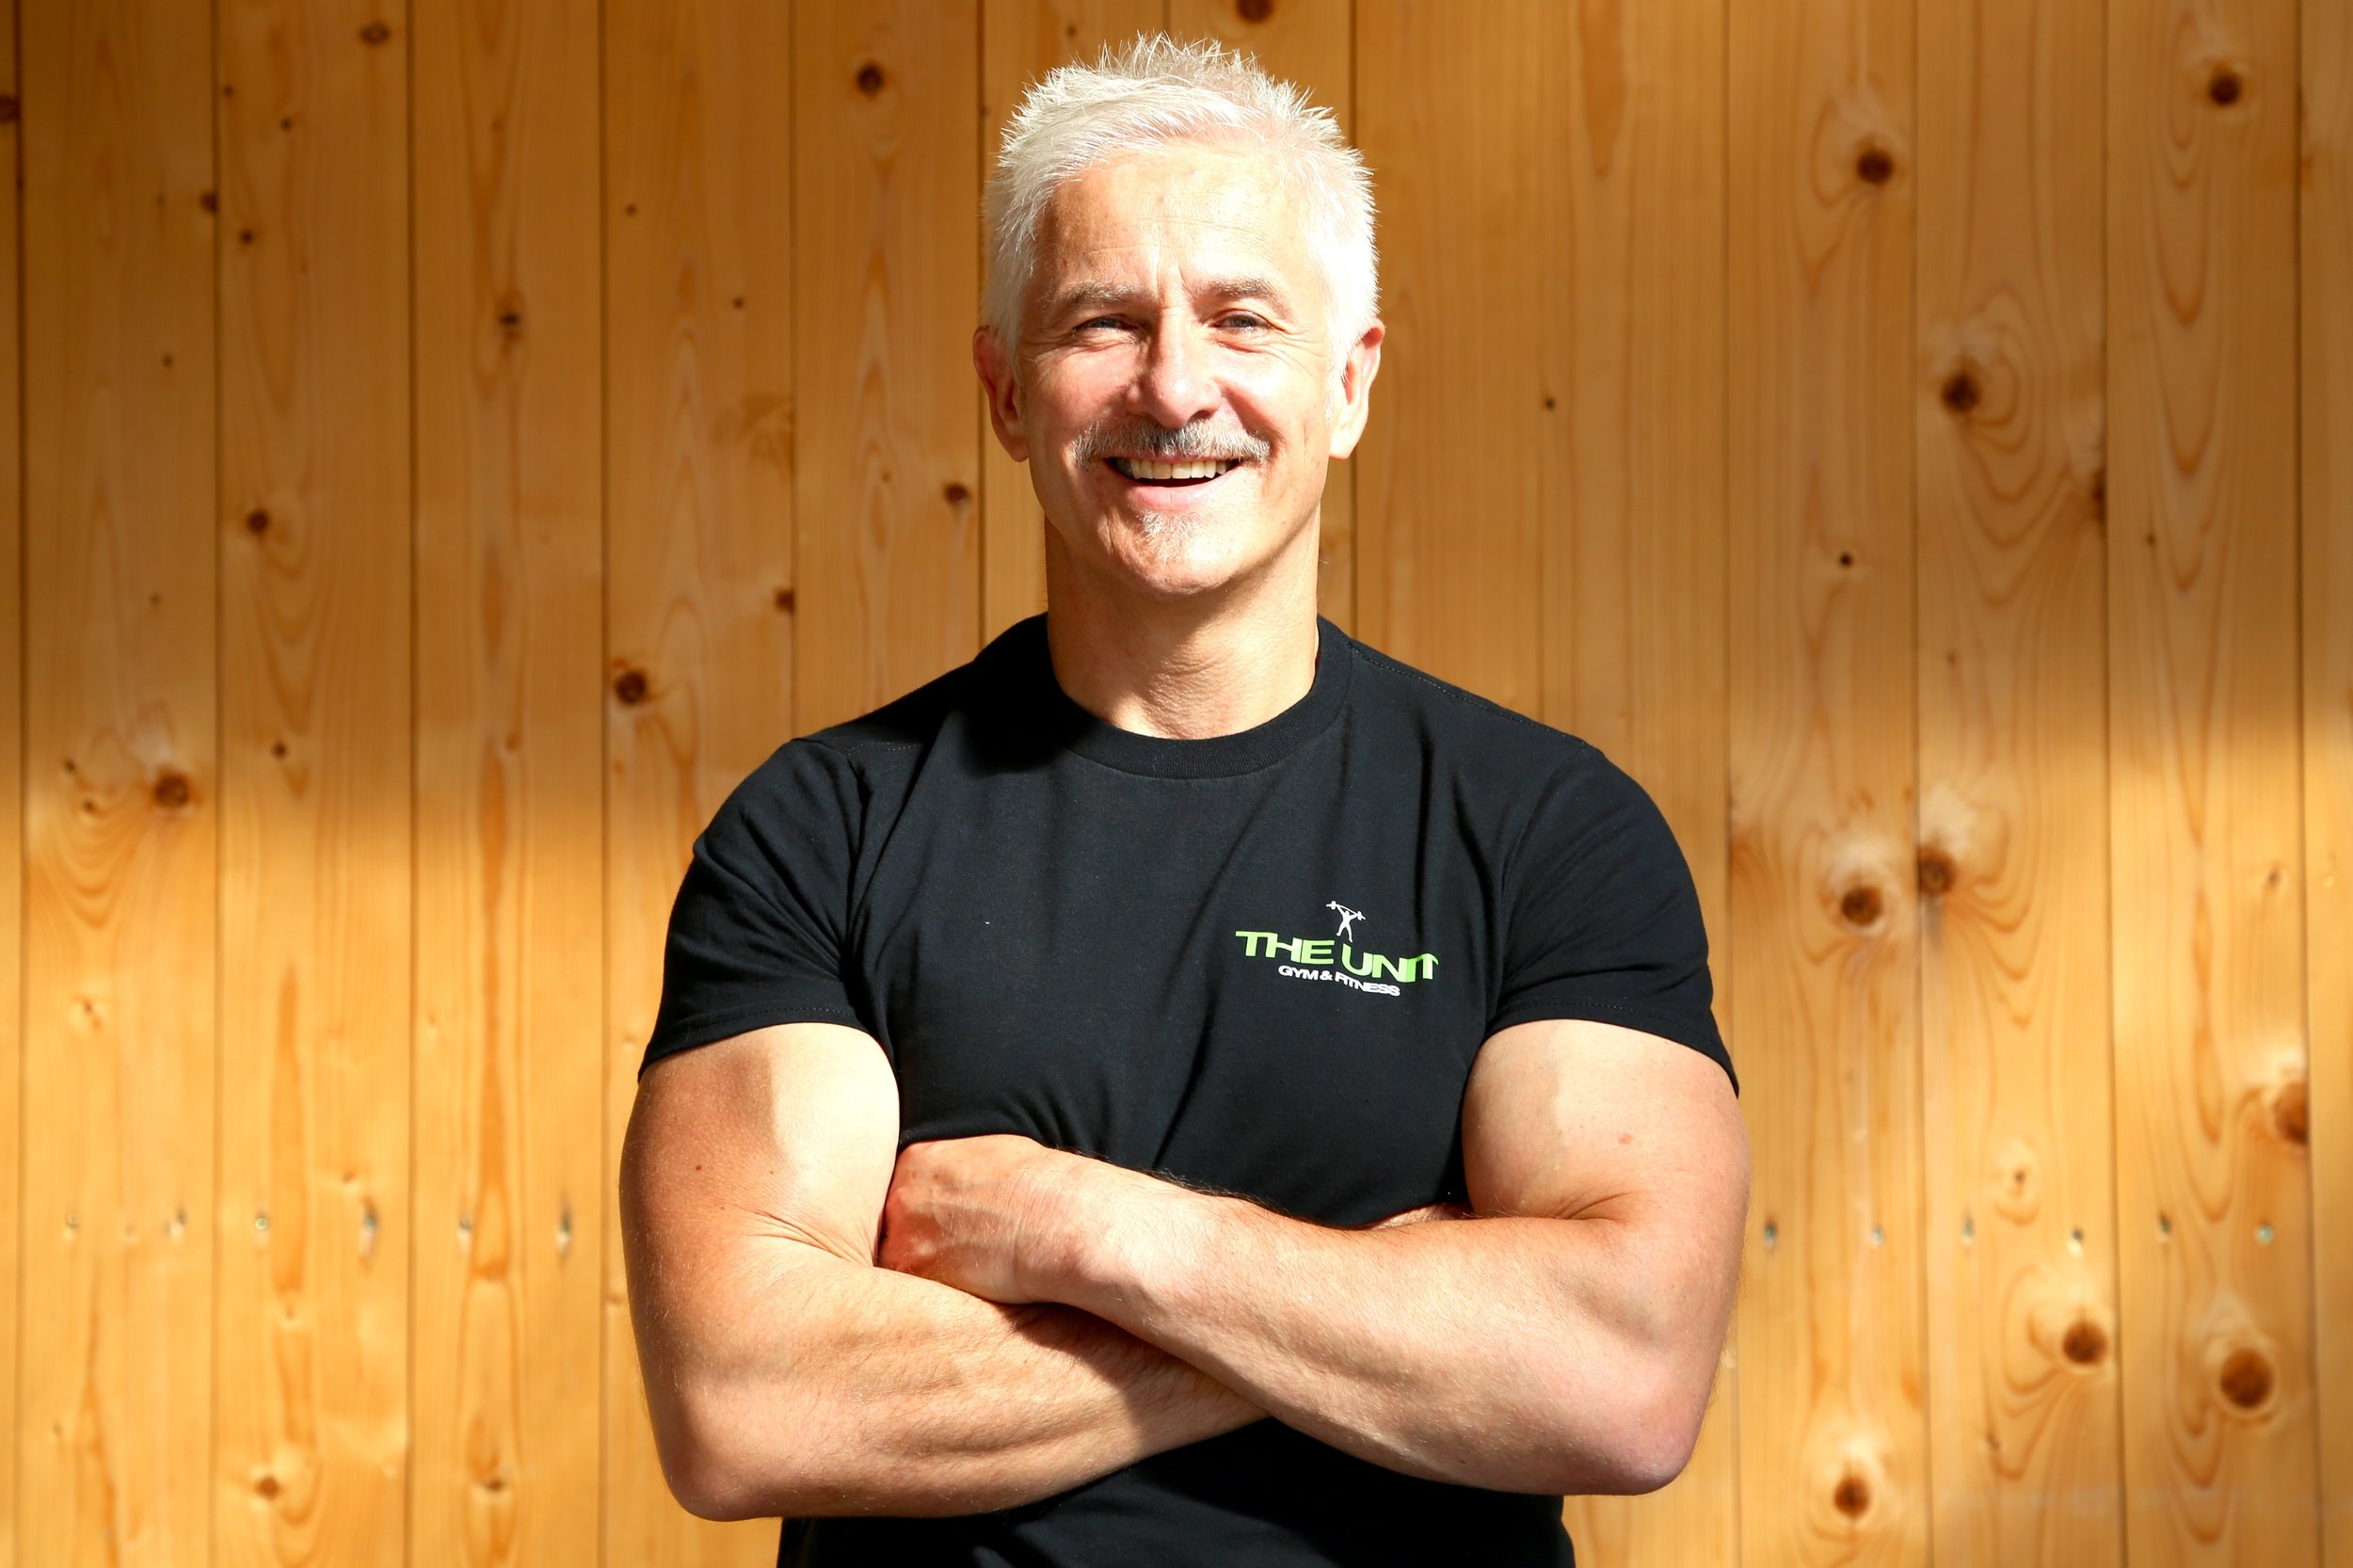 STEVE KILNER   Steve has been practicing and teaching martial arts for over 40 years and is a 2nd Dan Black Belt in Ju-Jitsu. He specialises in strength and conditioning for combat sports and also has a keen interest in body building and general fitness.